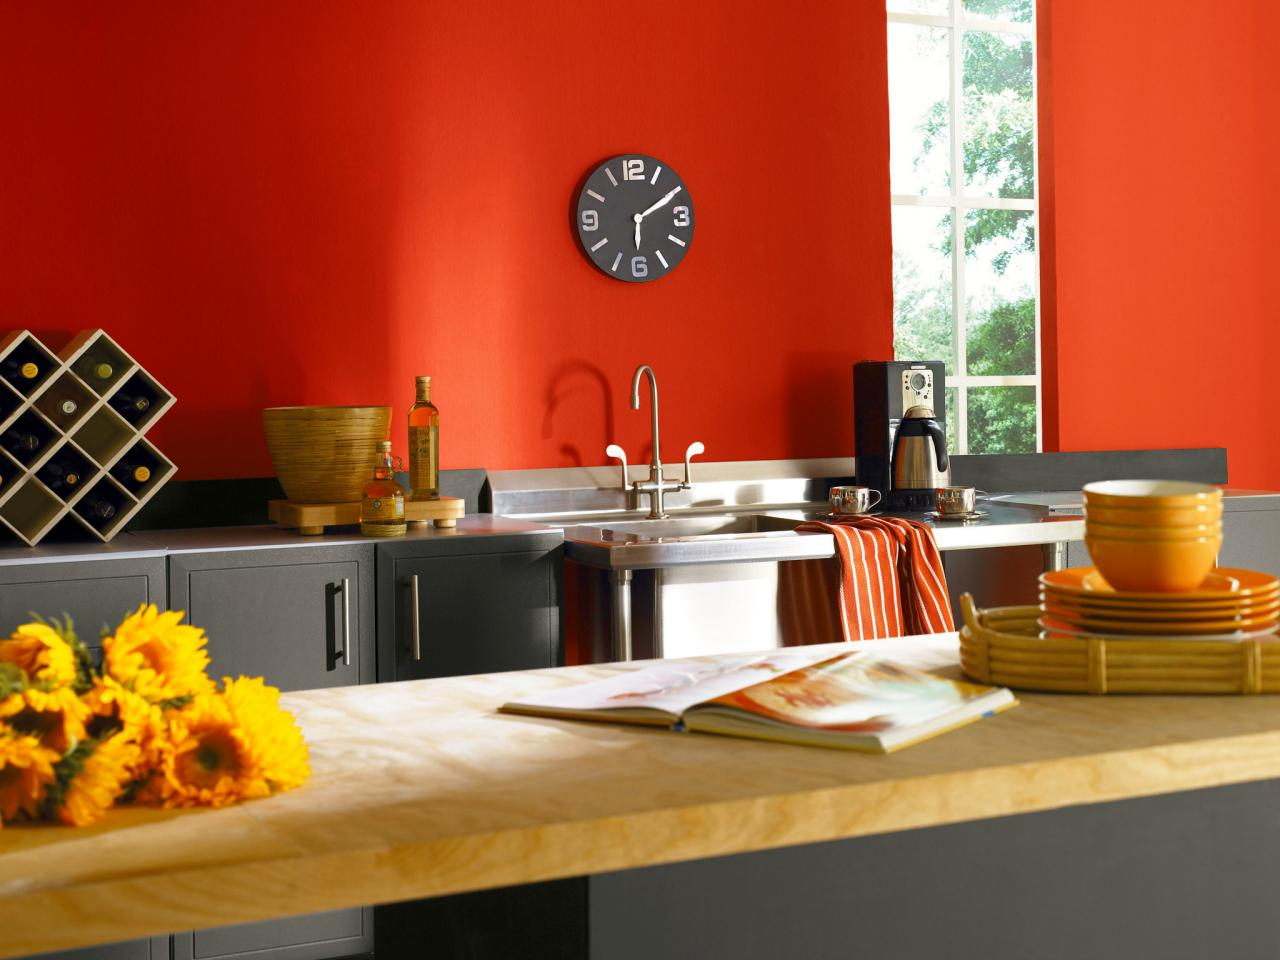 Top 8 Kitchen Renovation Tips for 2015